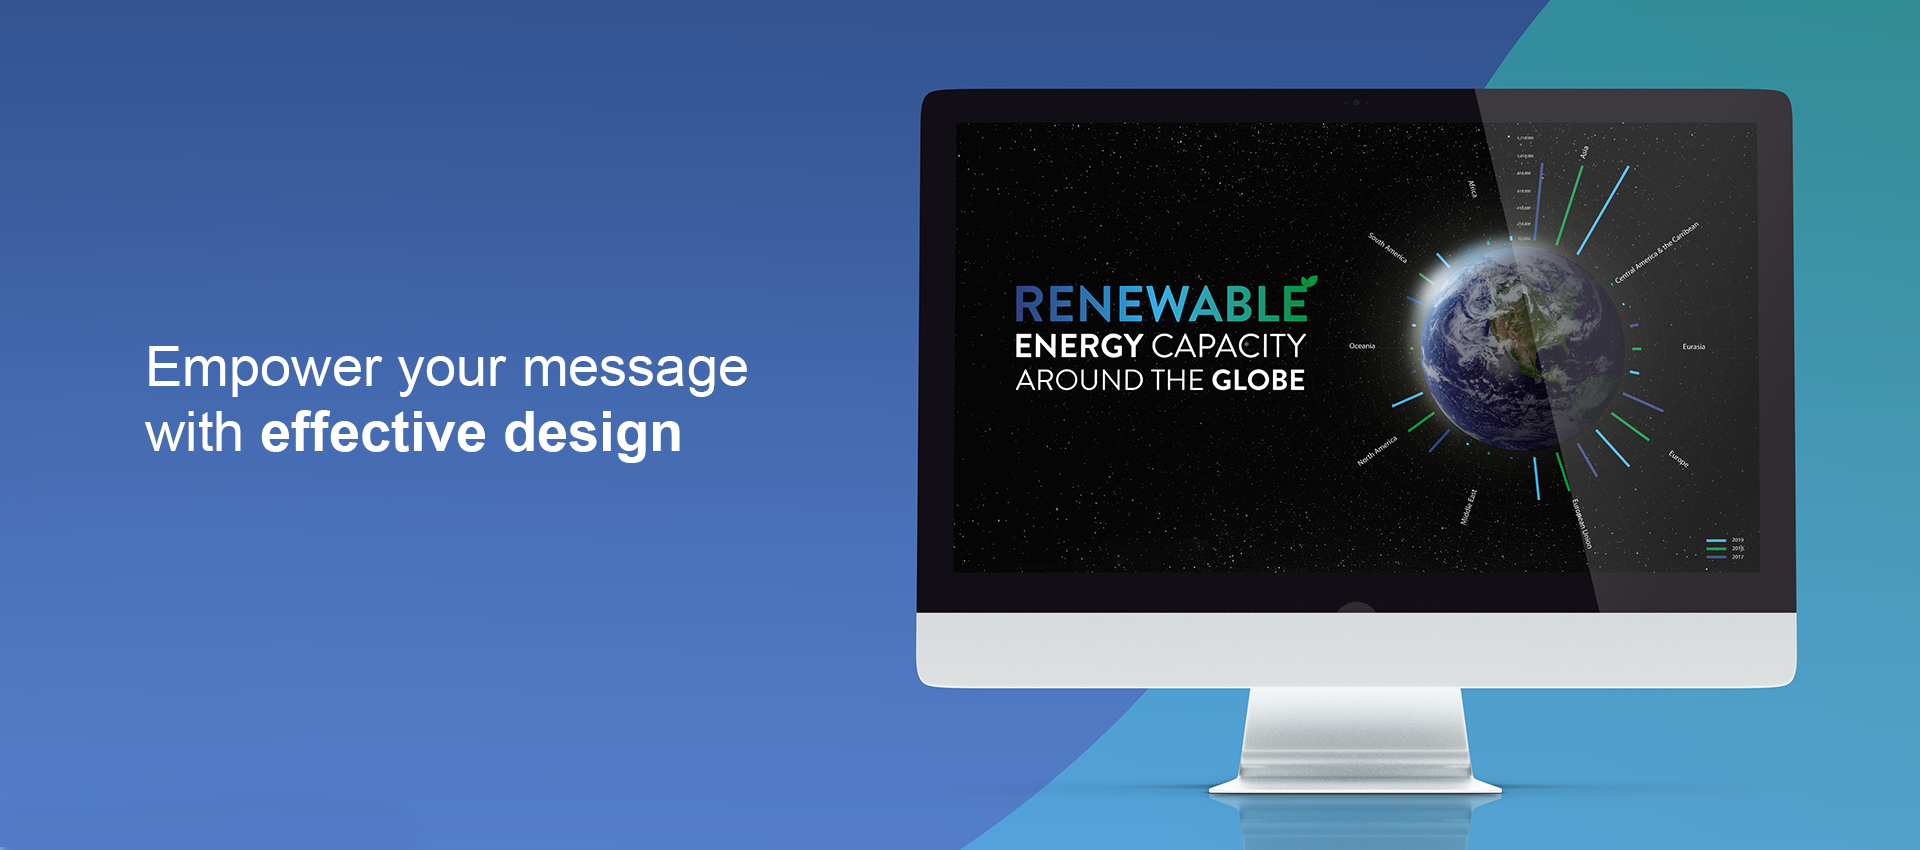 Empower your message with effective design